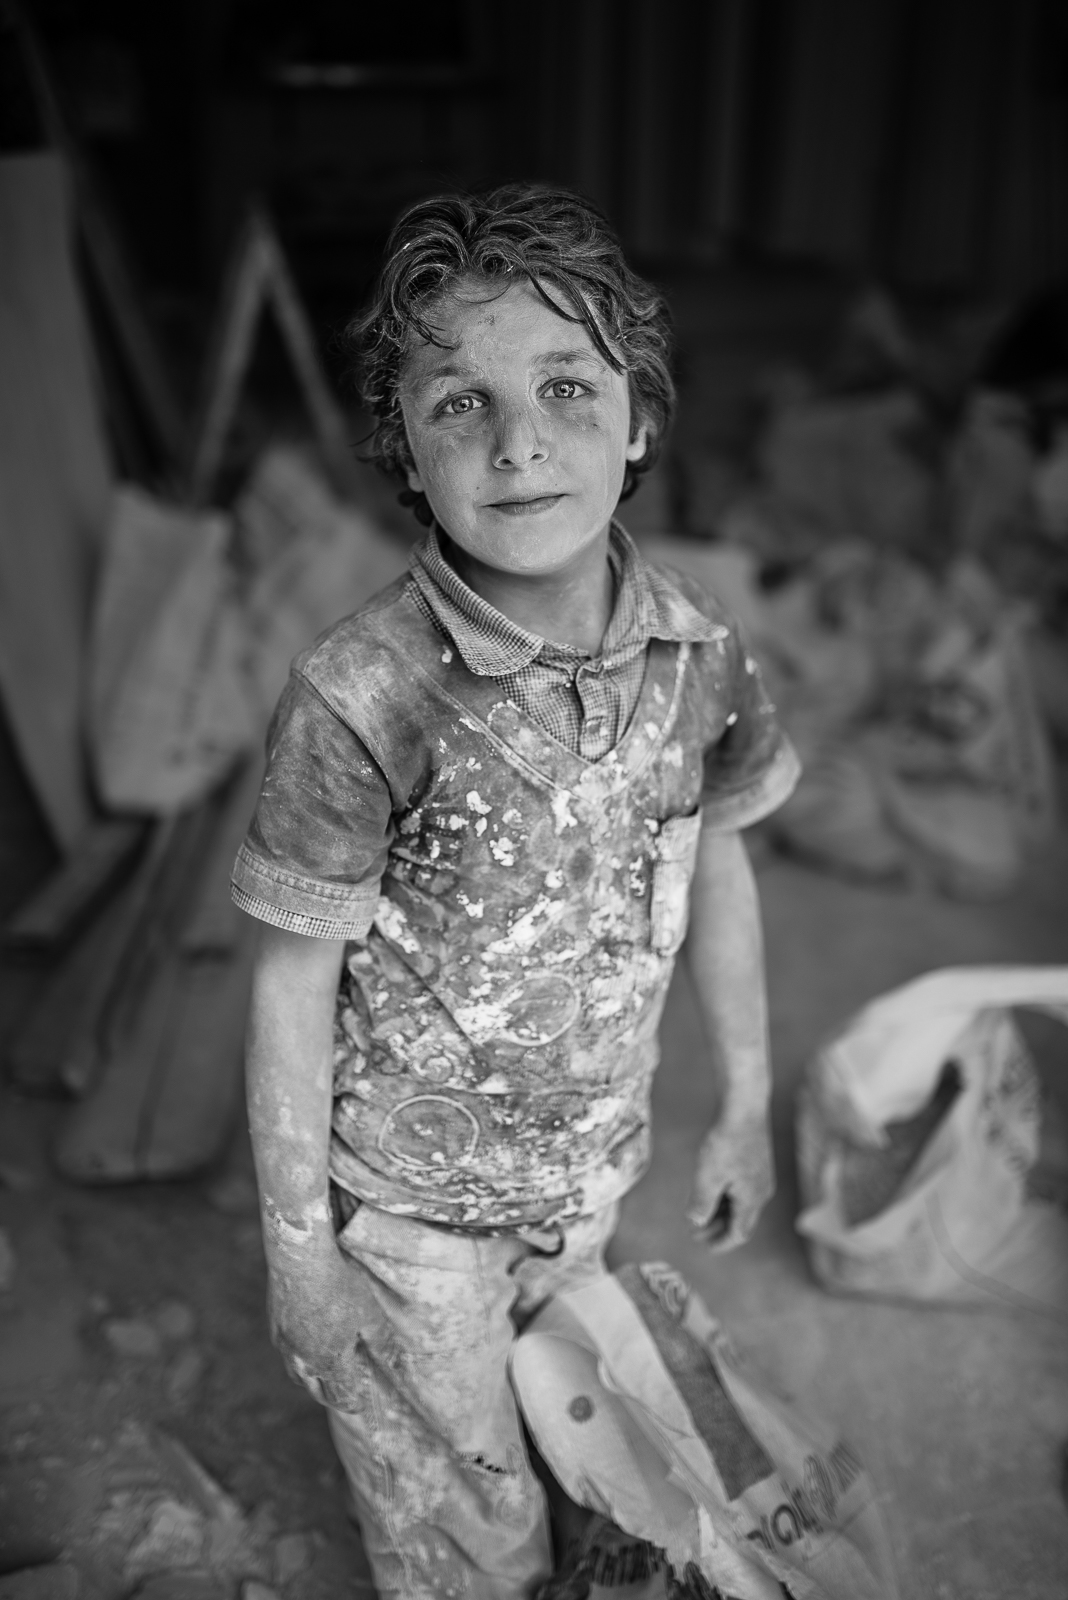 Kilis. The work of a little syrian boy:carry cement bags inside a house under construction